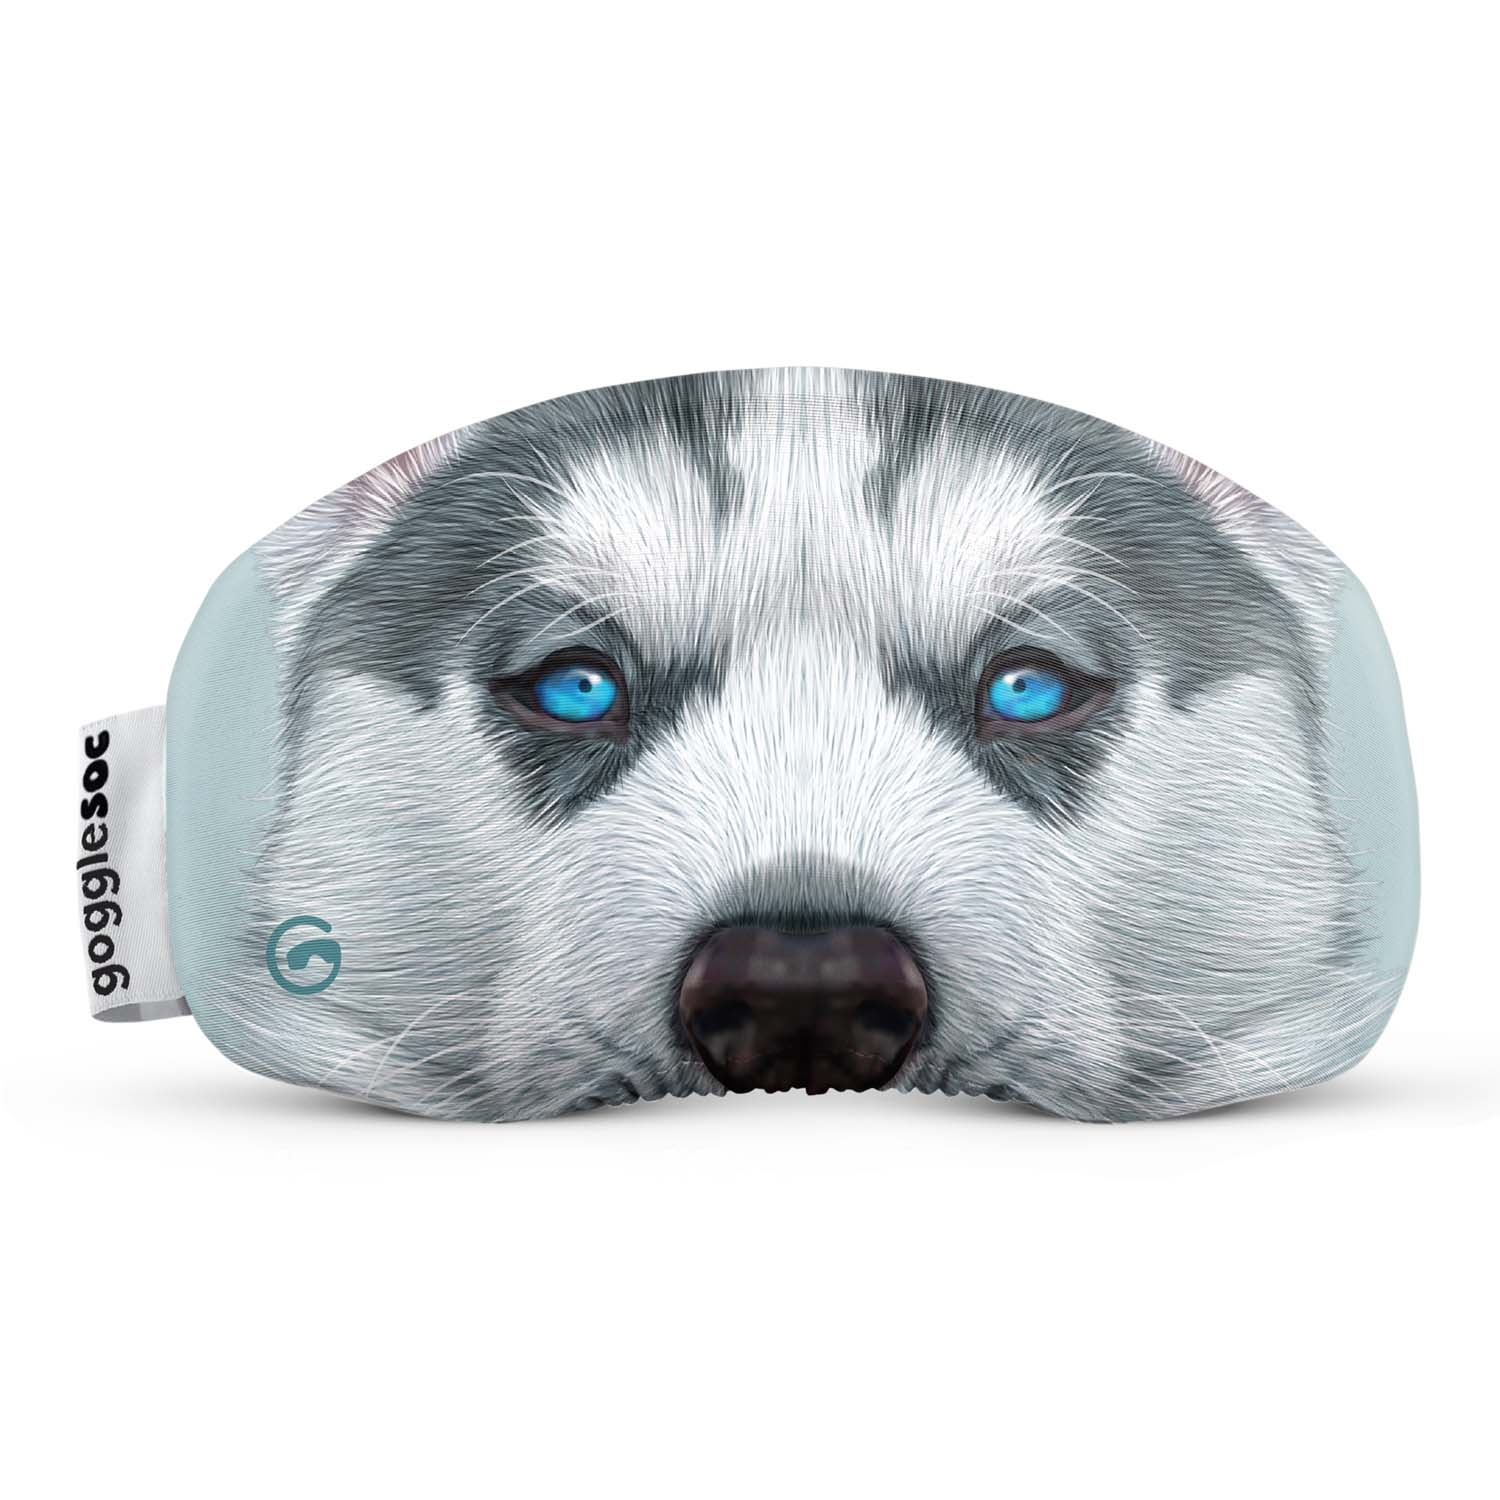 Gogglesoc Lens Cover Husky